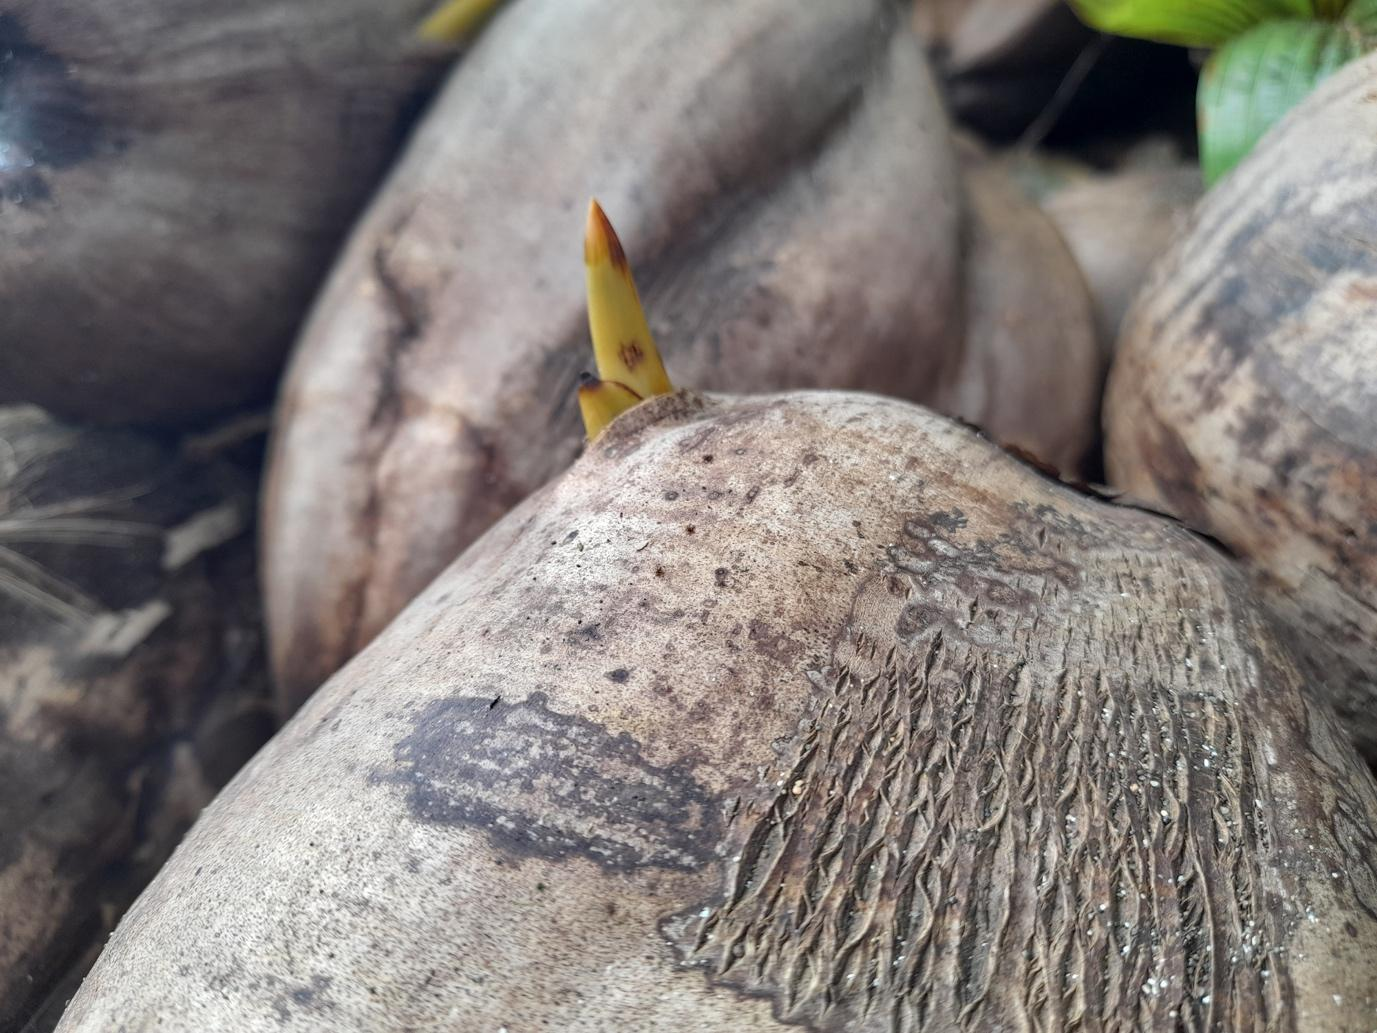 shoots coming out of coconut